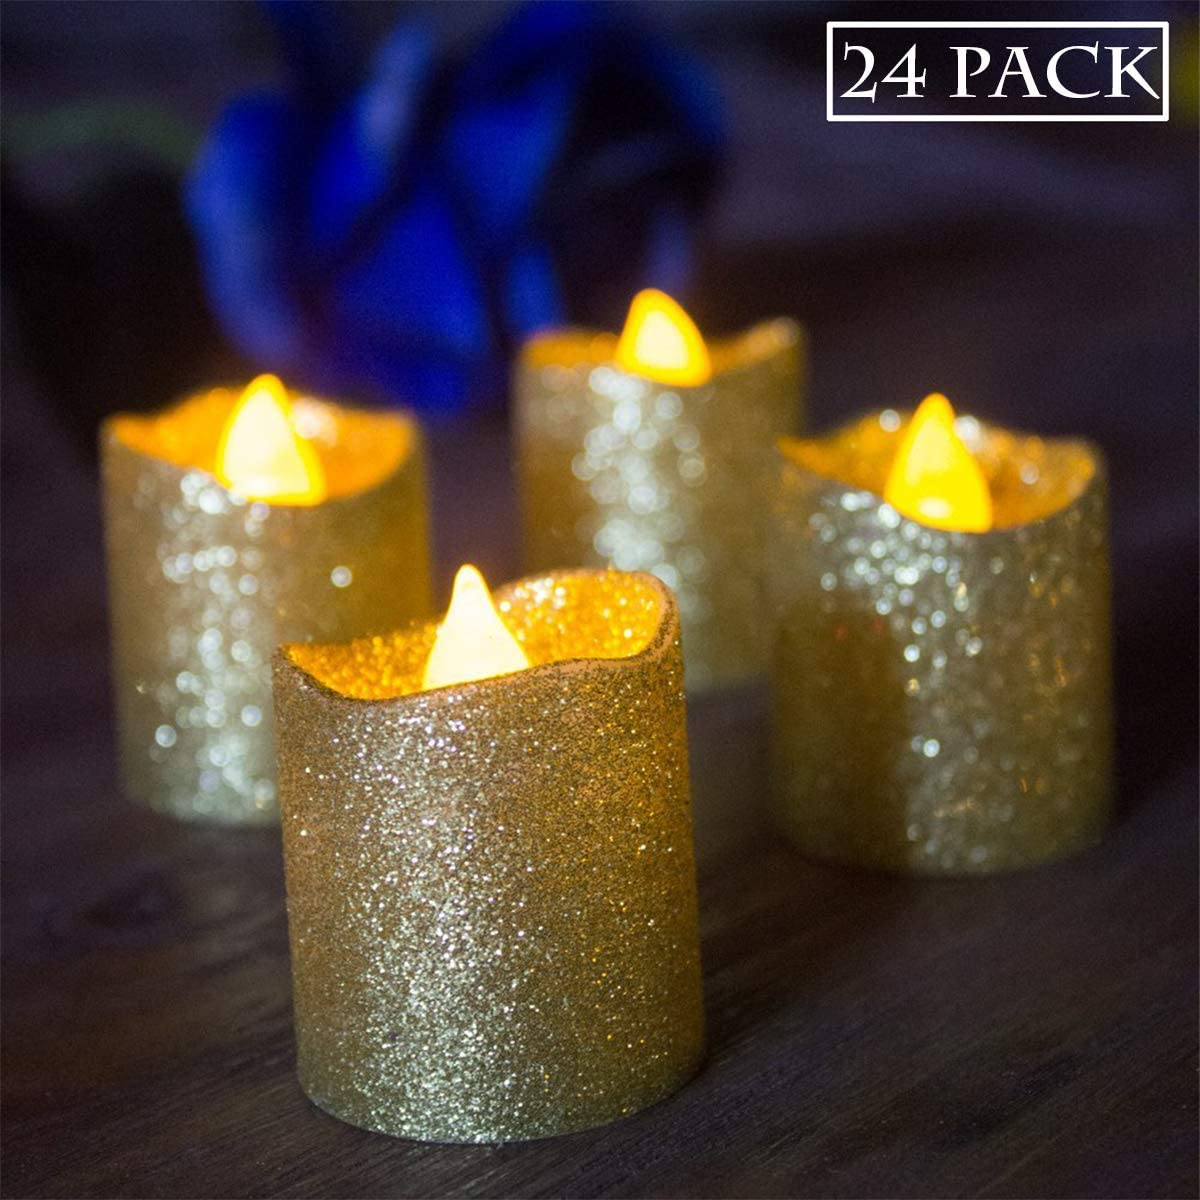 Gold Flameless Votive Candles, Battery Operated LED Tea Lights with Gold Glitter Flickering Bulb Light,Pack of 24,Small Electric Fake Tea Candle Realistic for Wedding, Table,Outdoor,Celebration